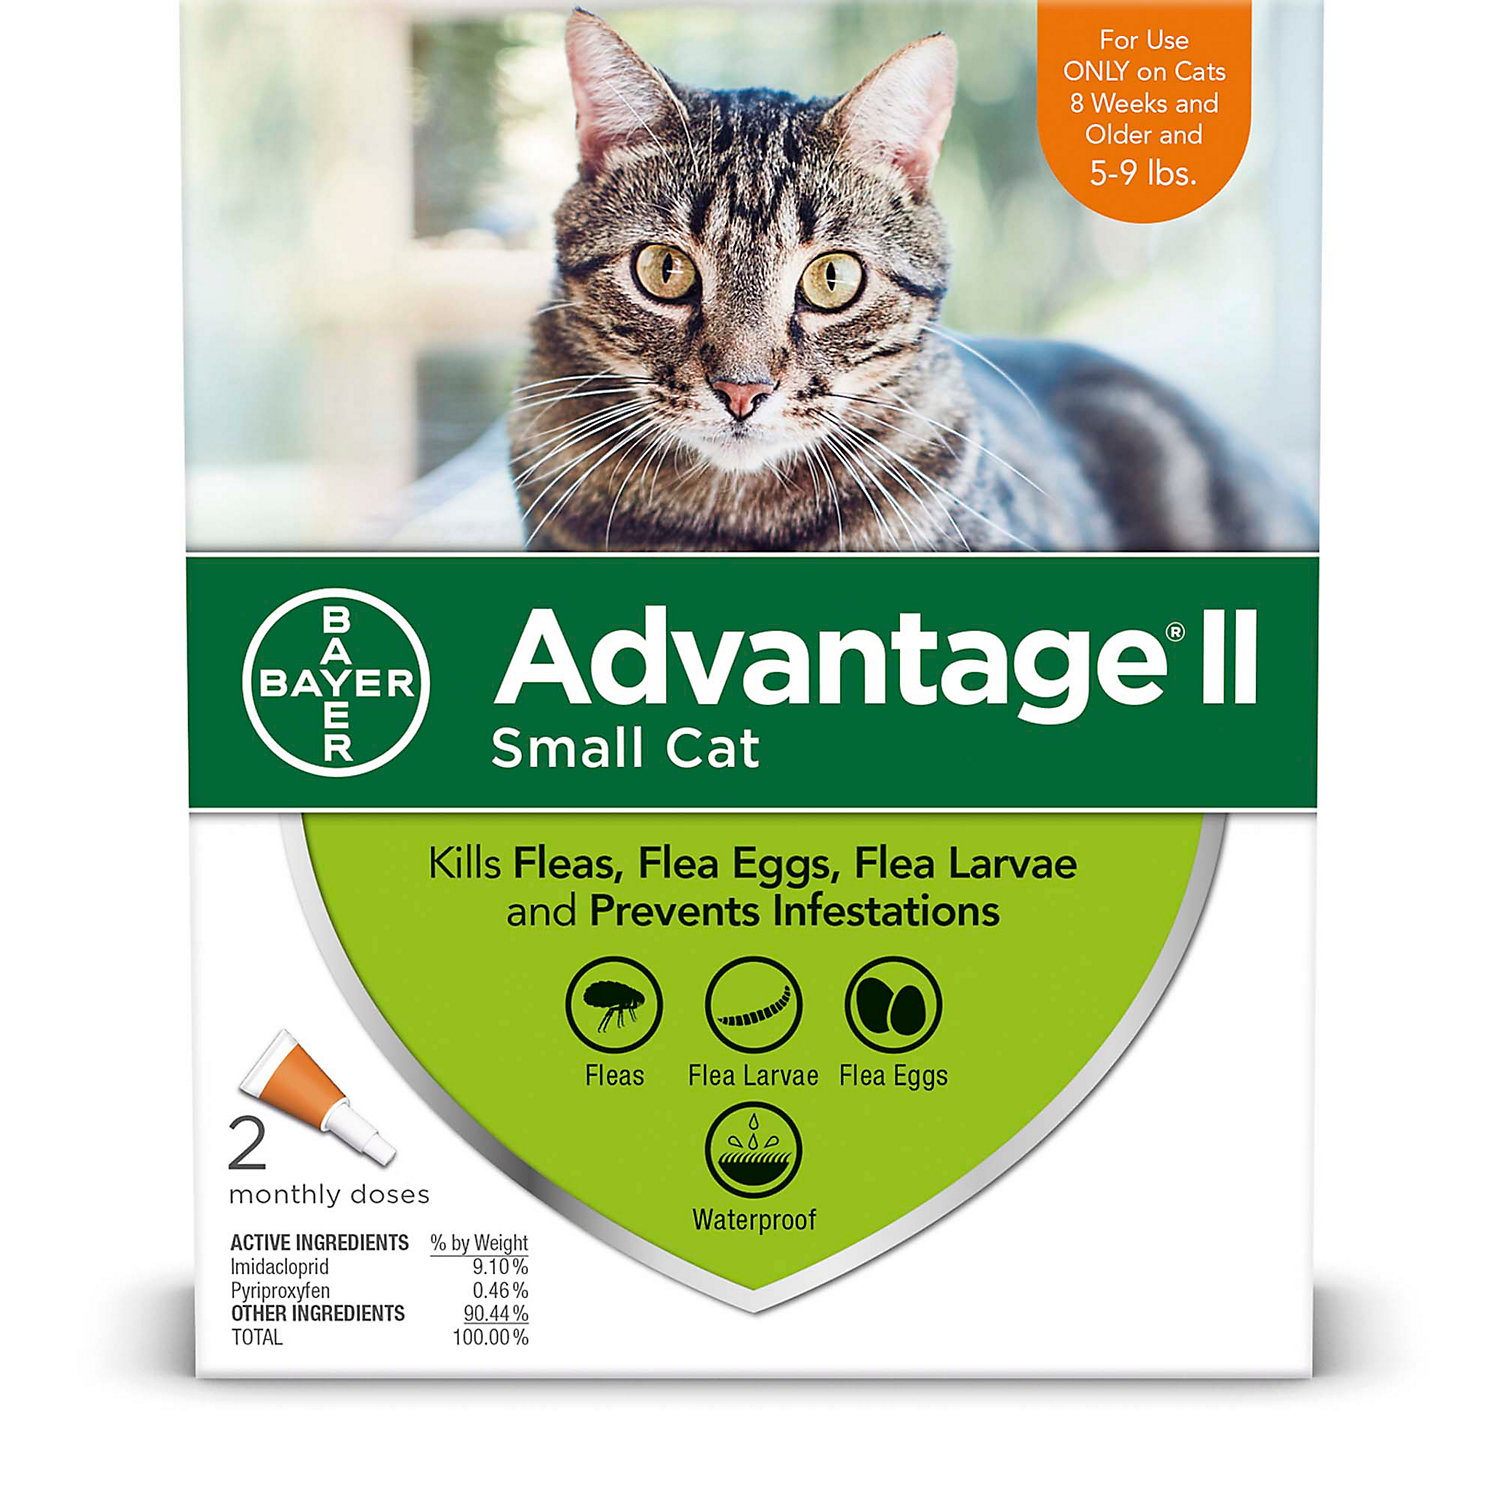 Advantage Ii Once A Month Topical Small Cat Flea Treatment 2 Mo. 5 To 9 Lbs.